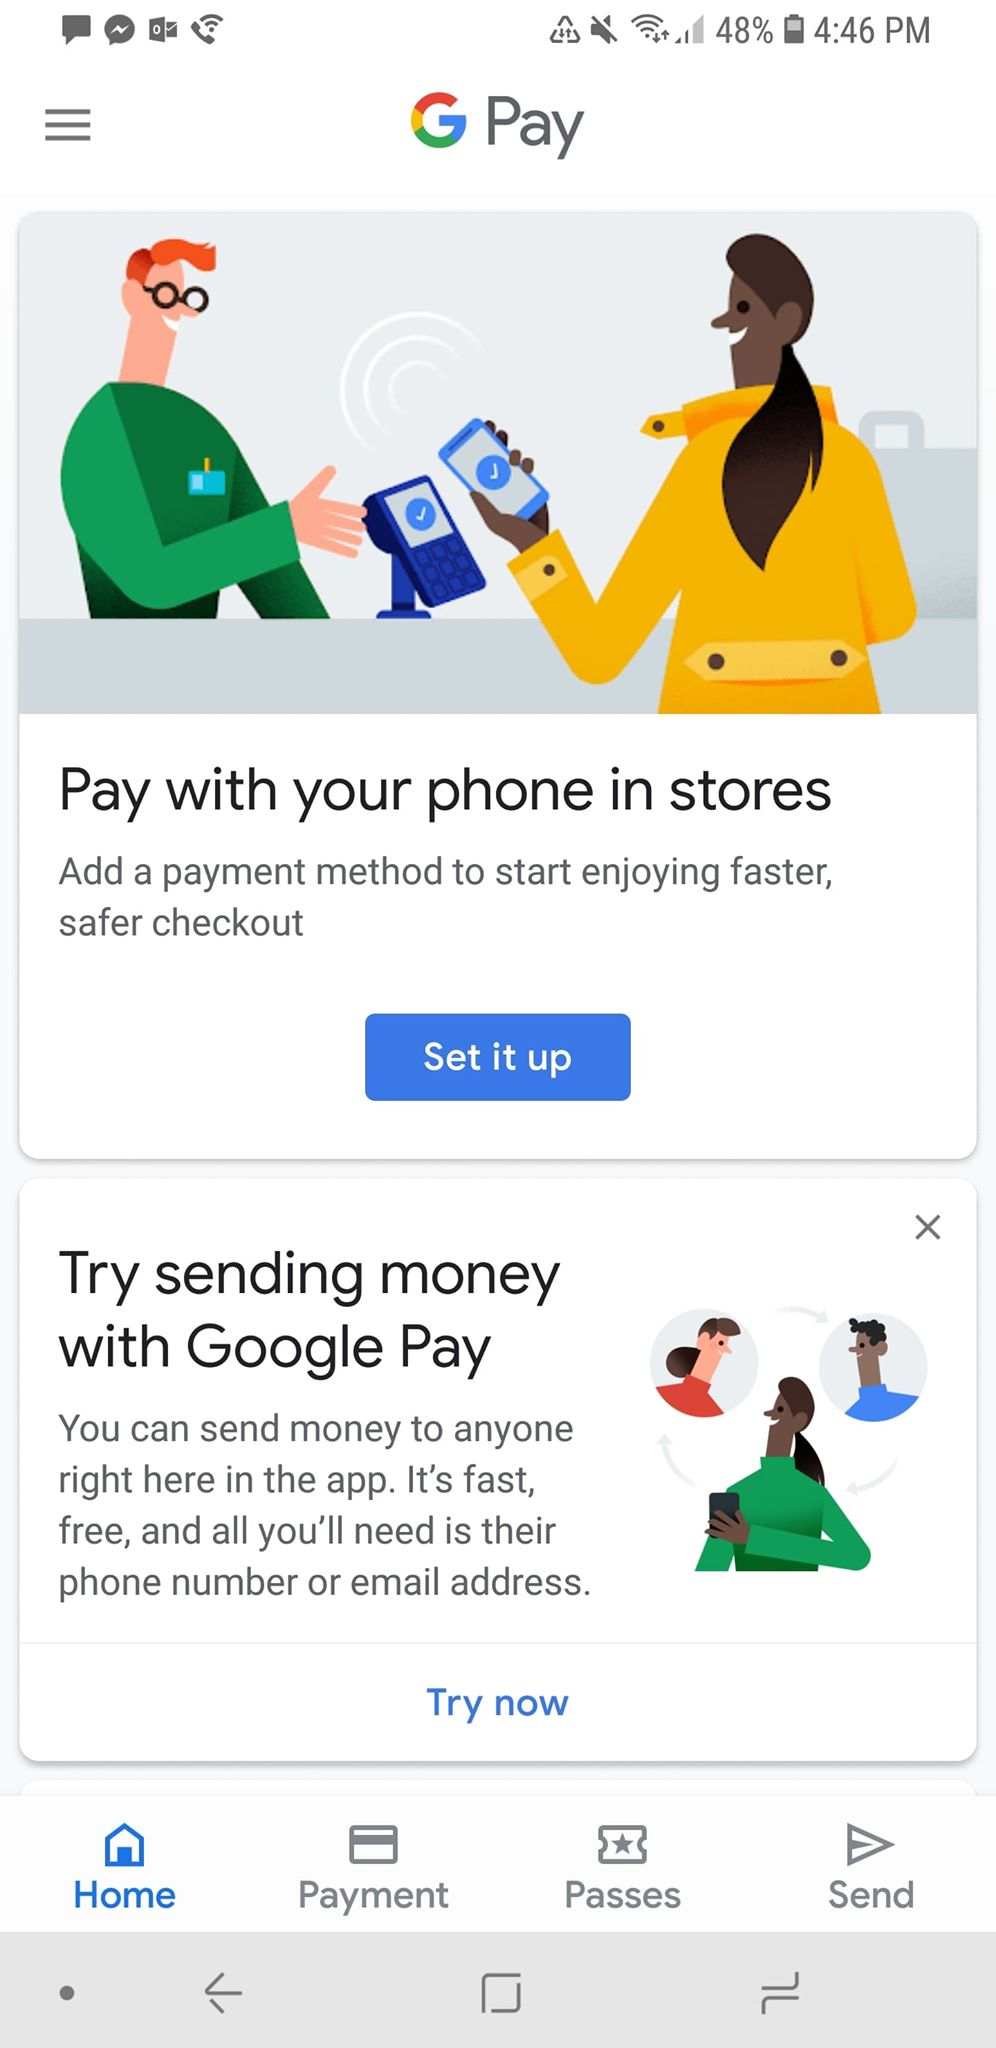 """Google Pay is similar to Apple Pay with minimal features but UI is more sophisticated with """"Passes"""" in a different page than """"Payment"""""""